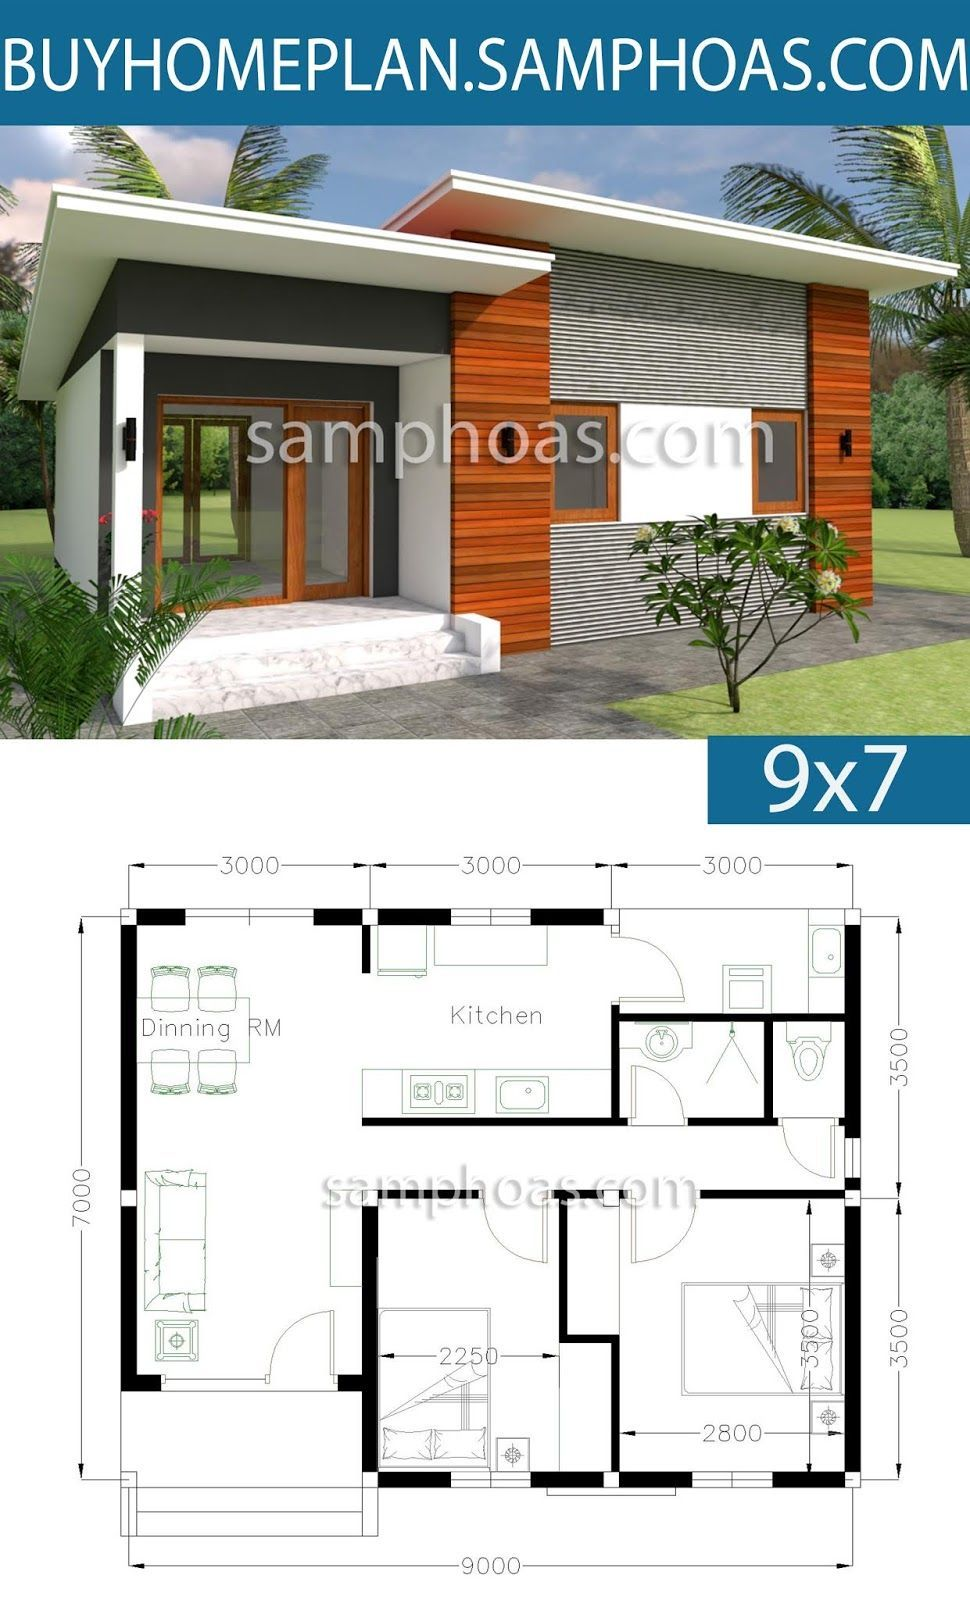 1 Million Stunning Free Images To Use Anywhere Marylandersunited Com In 2020 Small House Design House Designs Exterior Tiny House Design